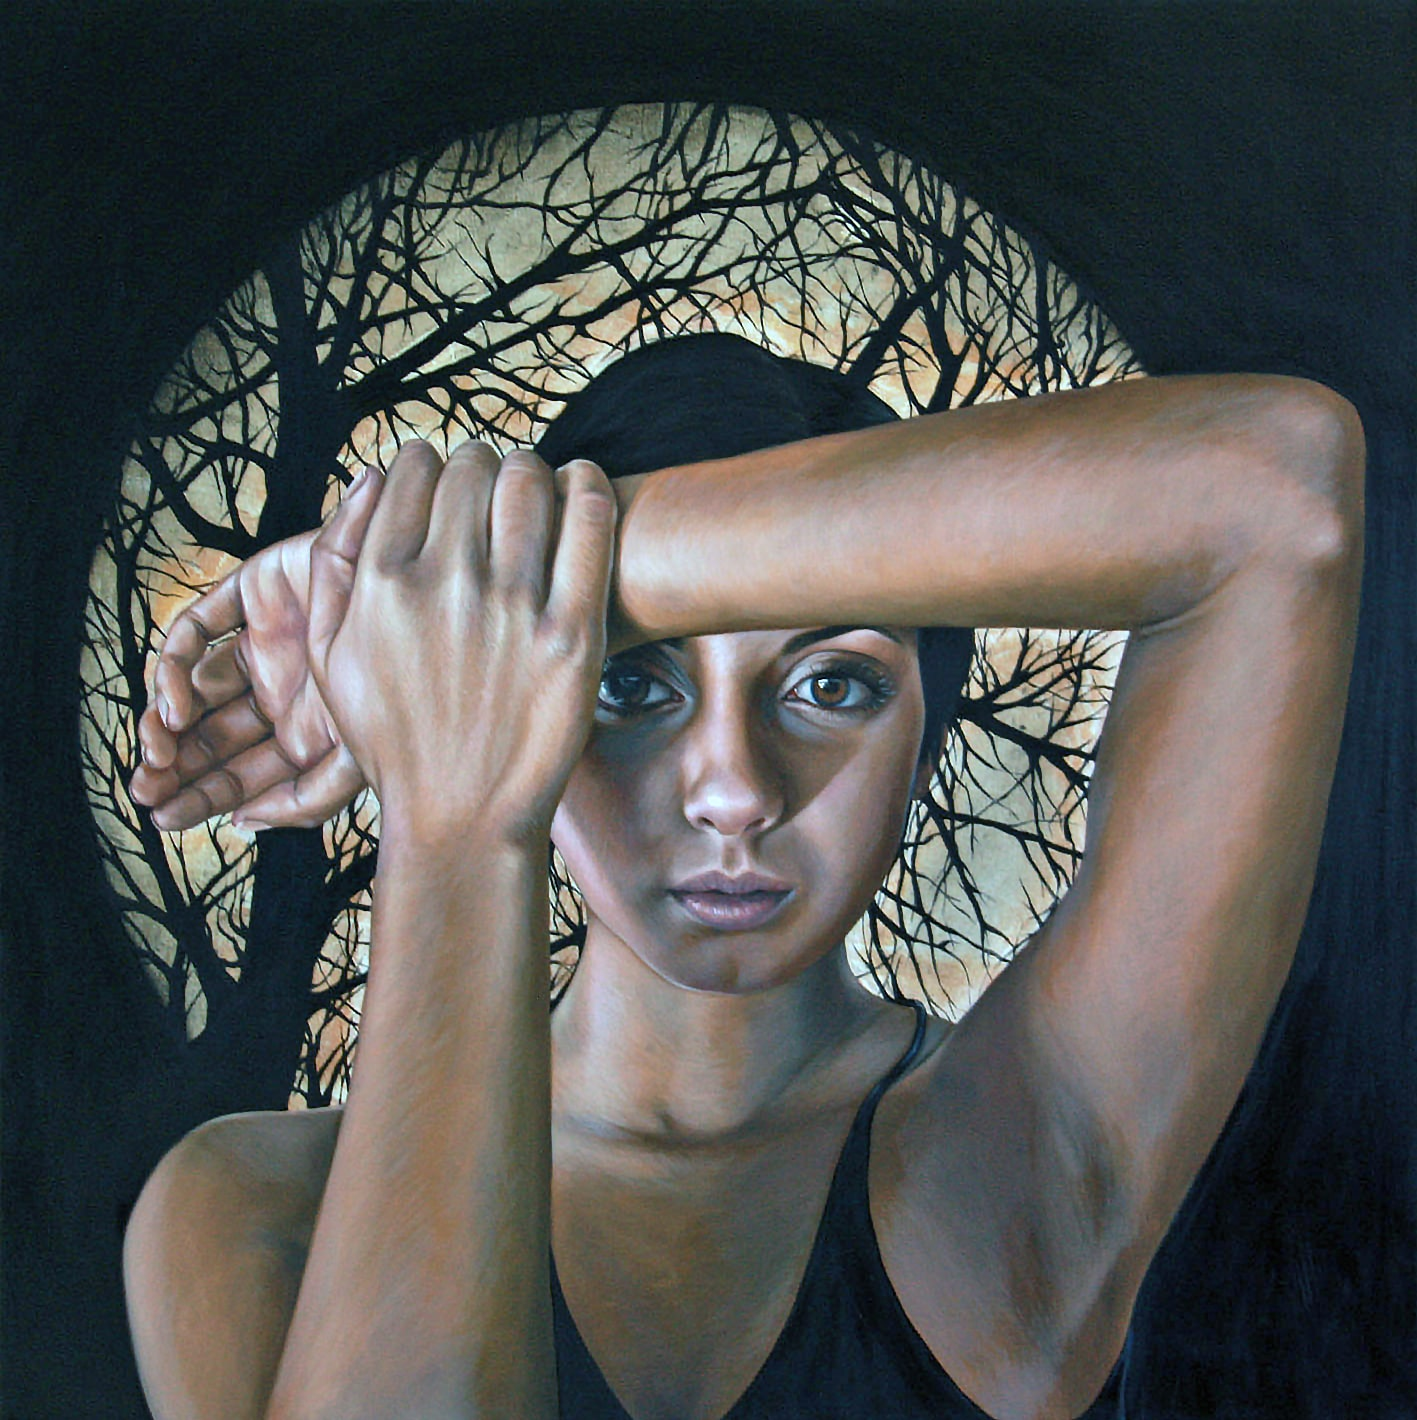 'Midnight', oil on canvas, 90x90cm, $13,